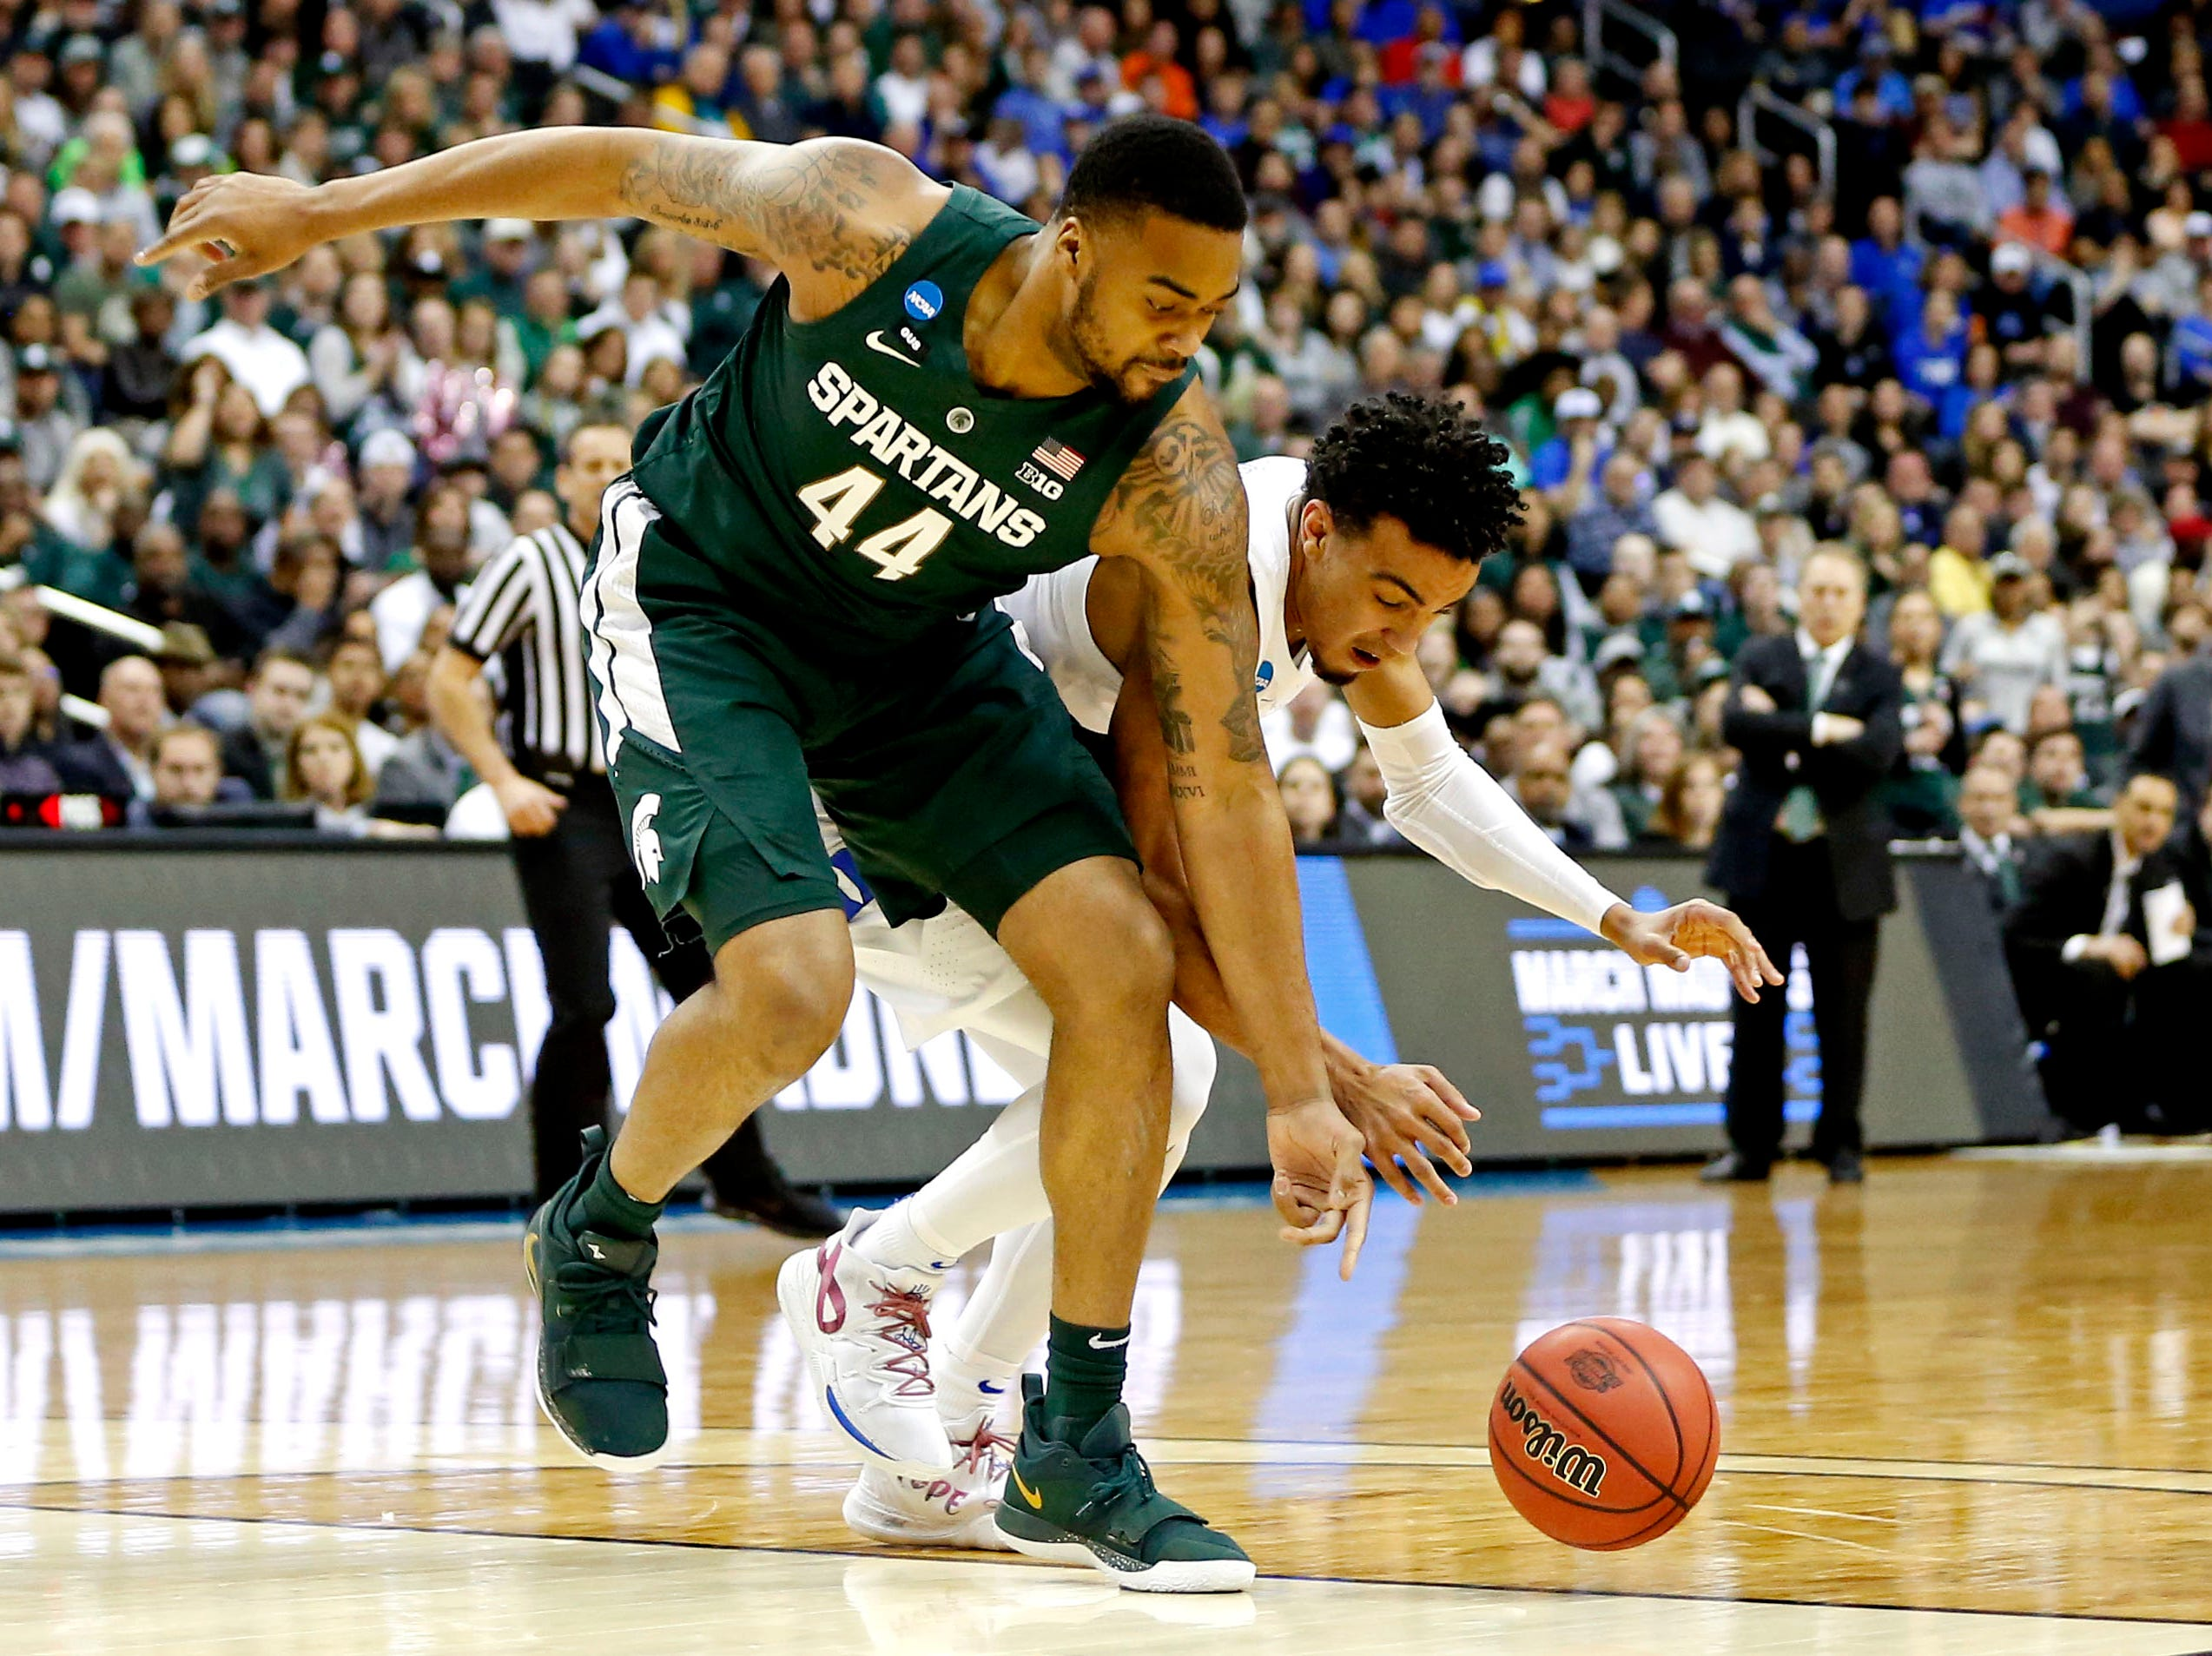 Mar 31, 2019; Washington, DC, USA; Duke Blue Devils guard Tre Jones (3) and Michigan State Spartans forward Nick Ward (44) go for a loose ball during the second half in the championship game of the east regional of the 2019 NCAA Tournament at Capital One Arena. Mandatory Credit: Amber Searls-USA TODAY Sports